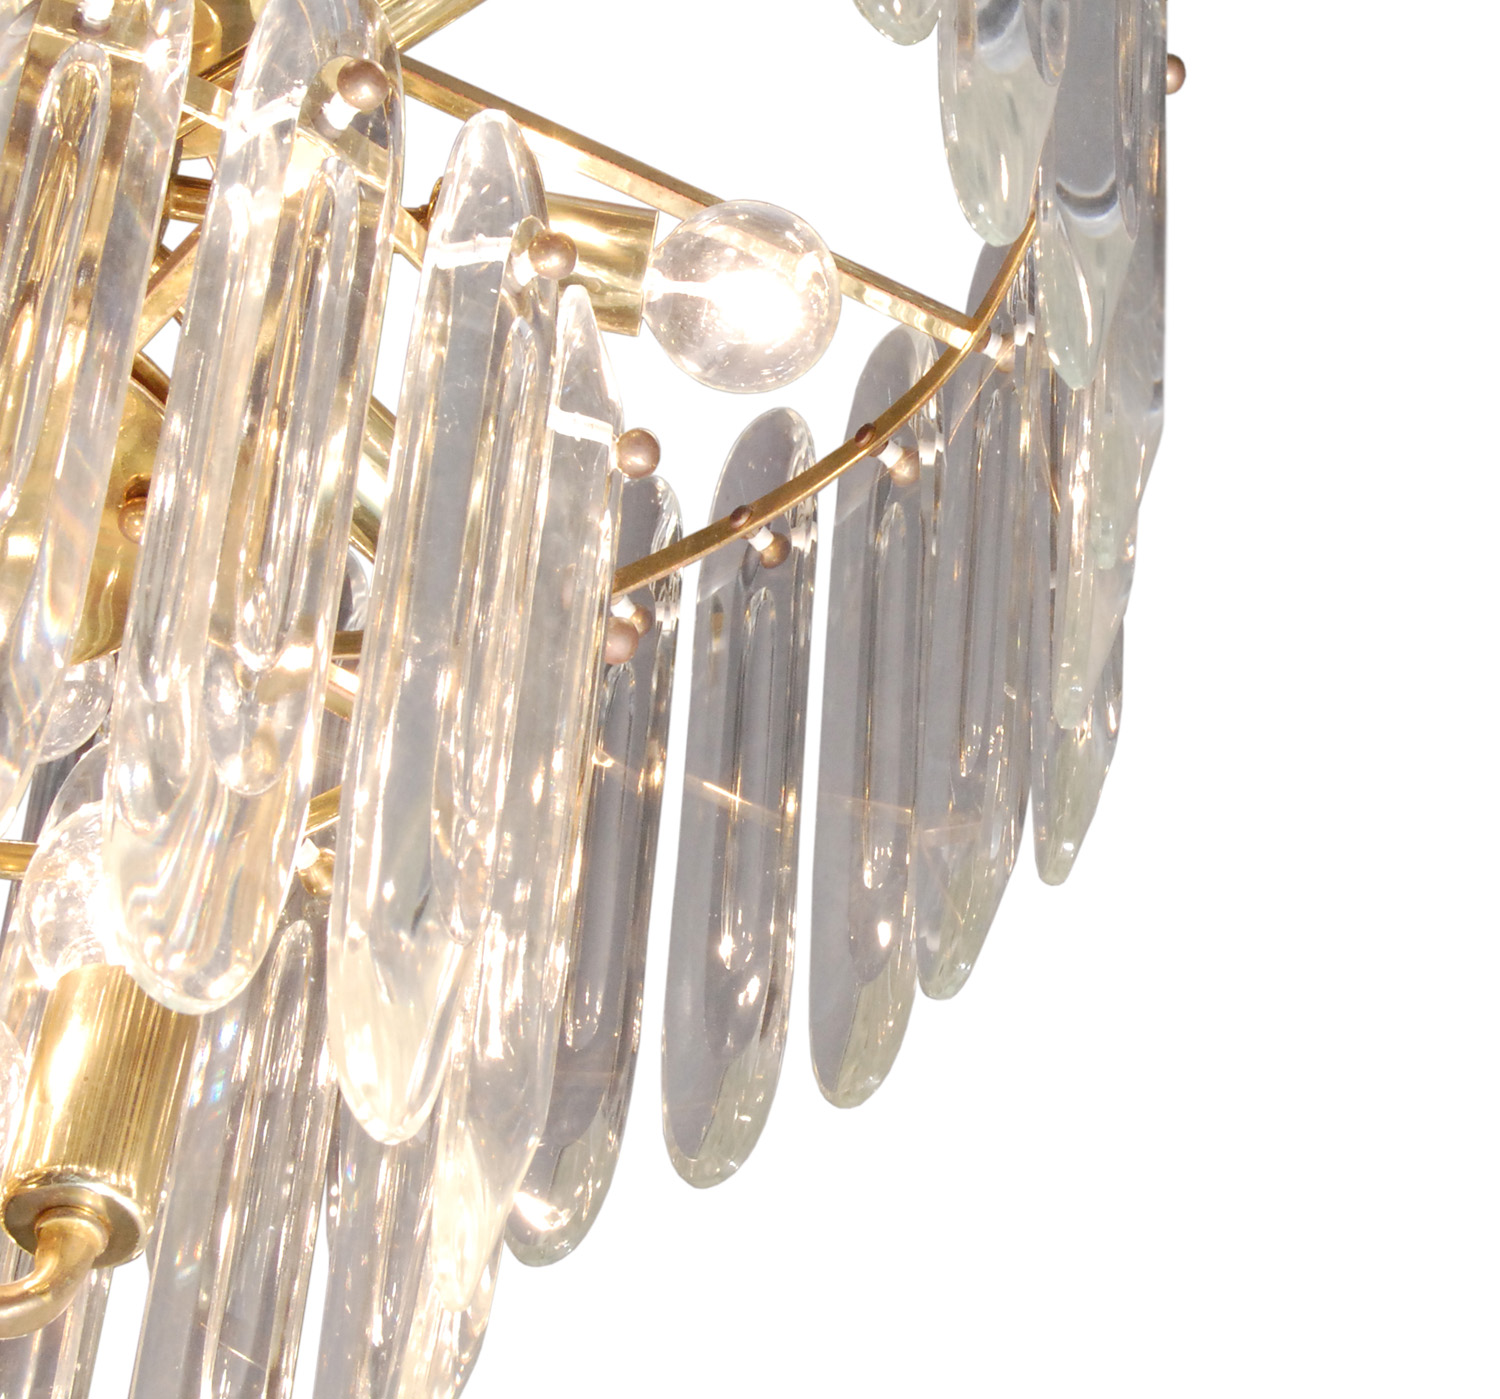 Sciolari 40 big clear crystals chandelier153 detail2 hires.jpg